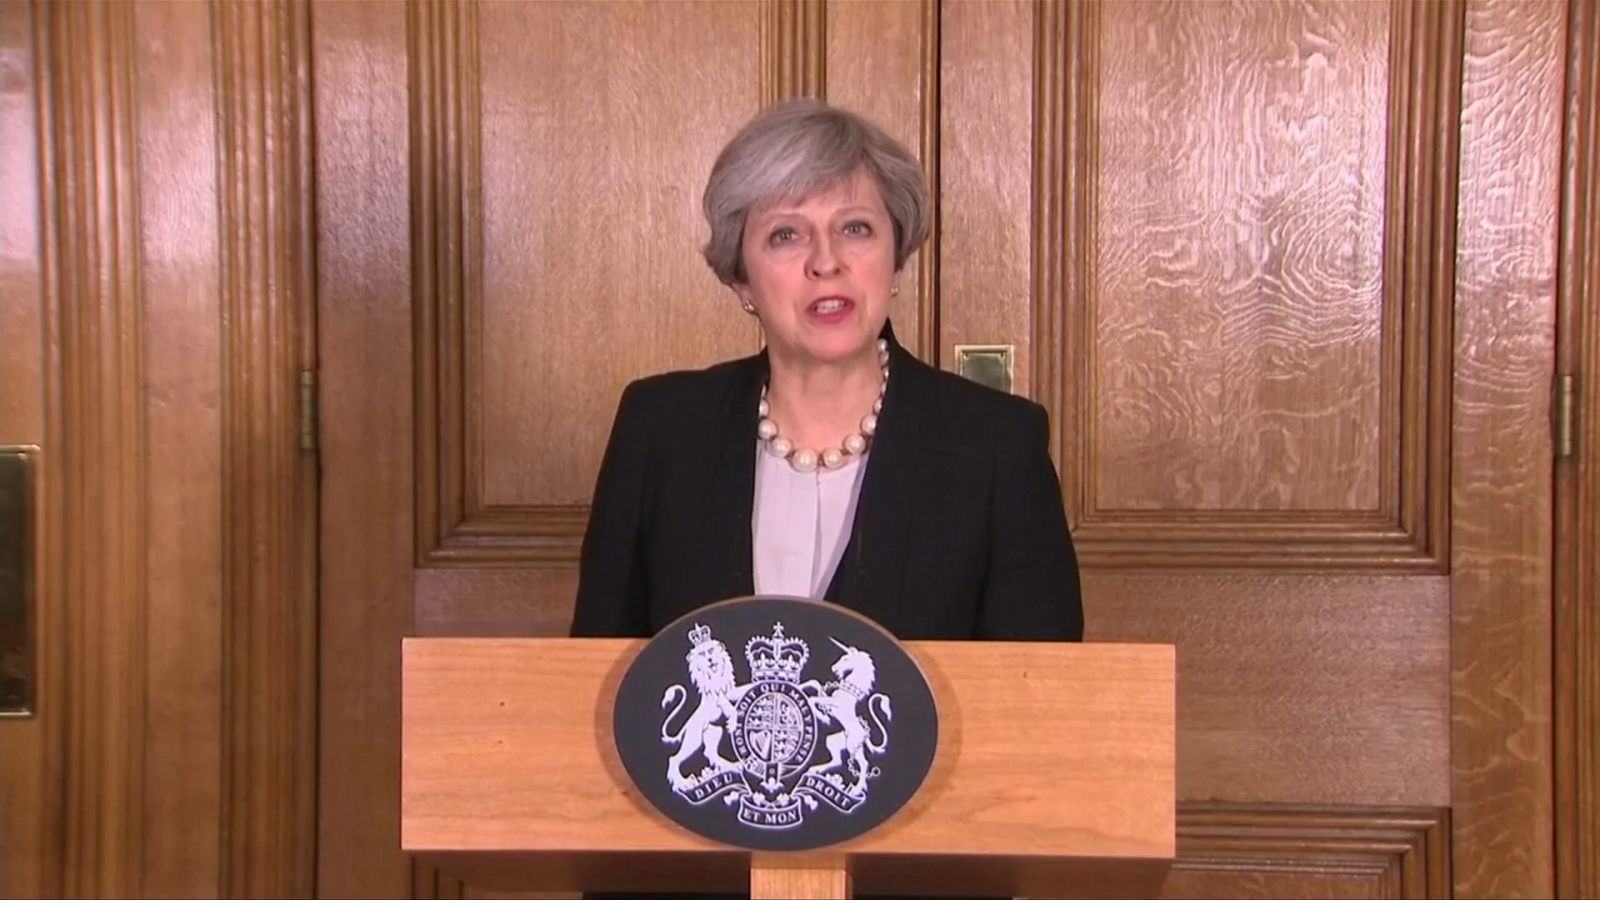 theresa-may-increases-u-k-terror-threat-level-from-severe-to-critical